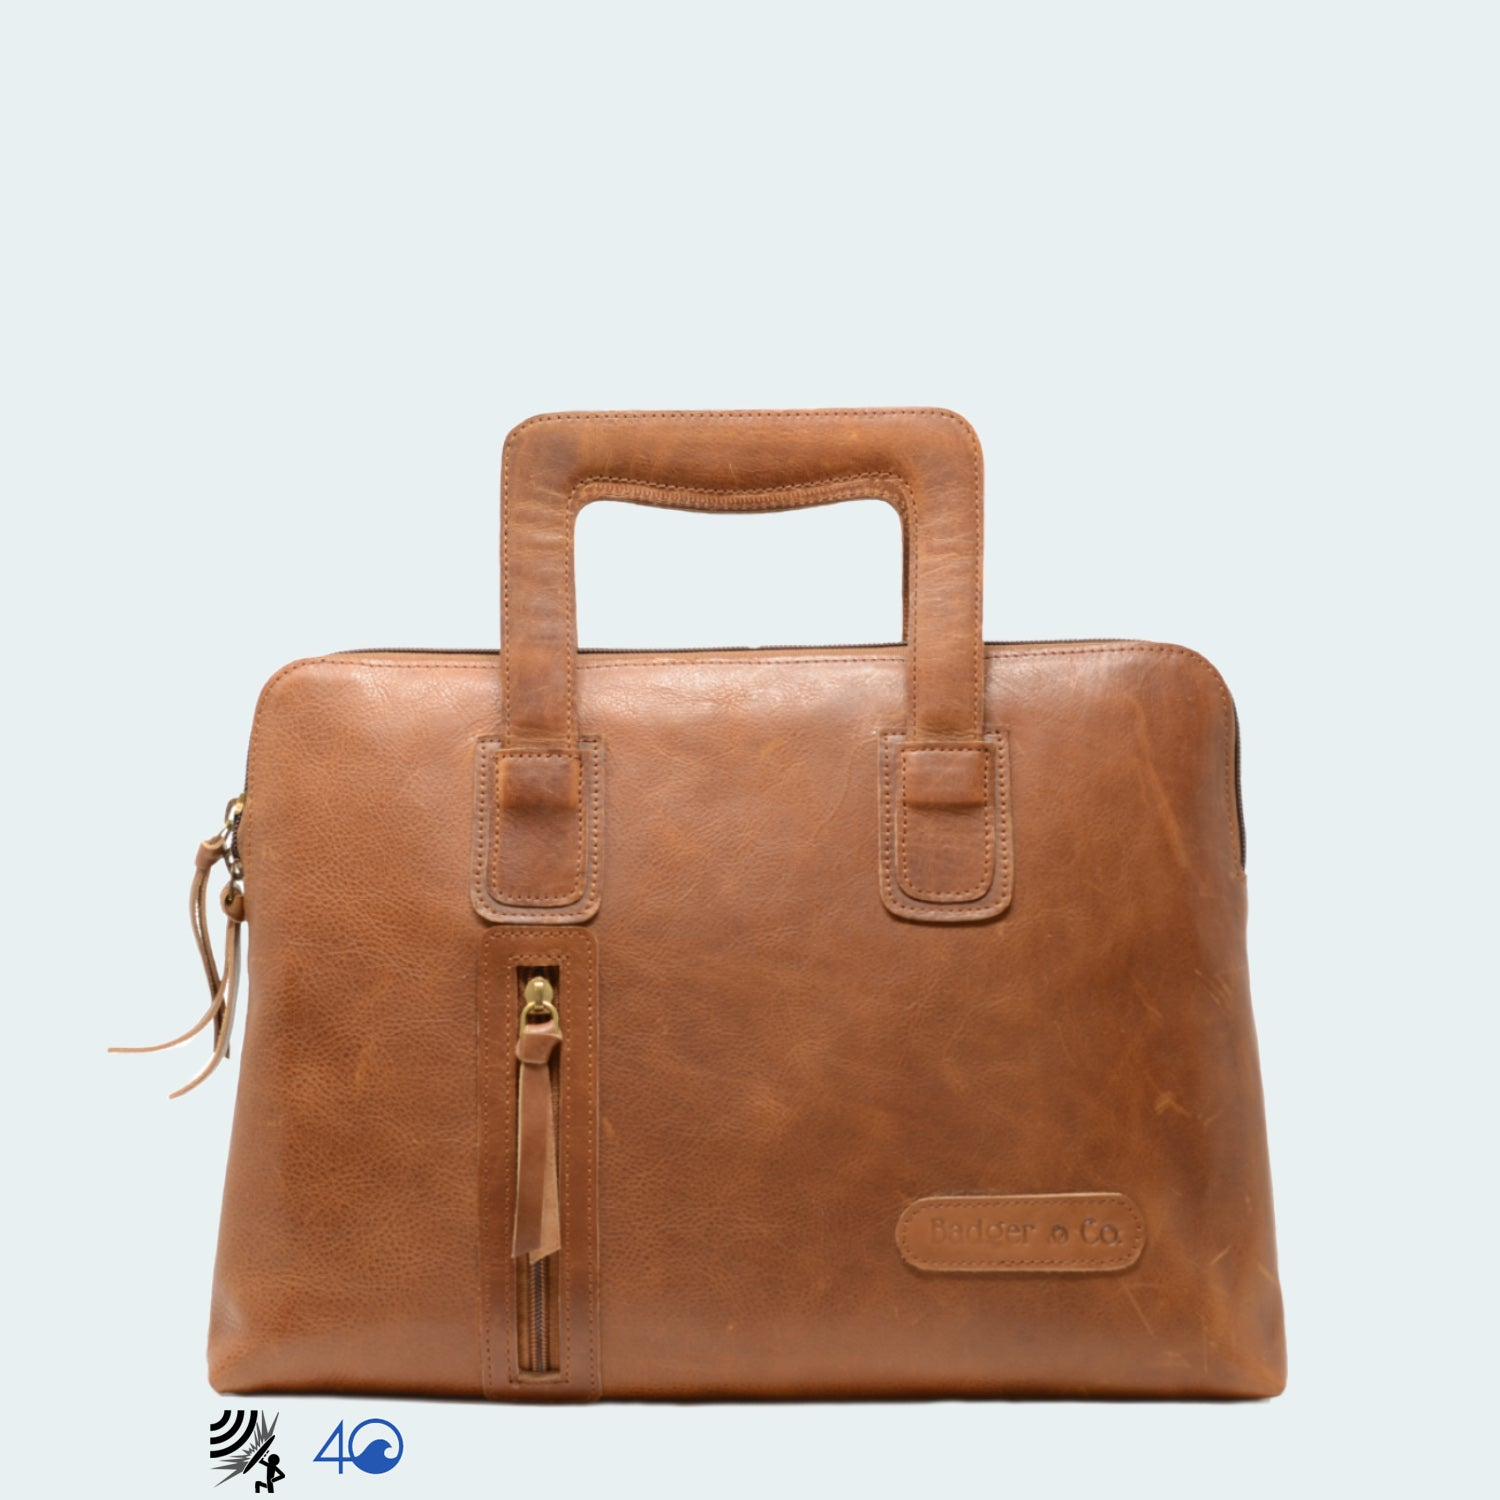 Leather Carryall Bag - Tawny Brown